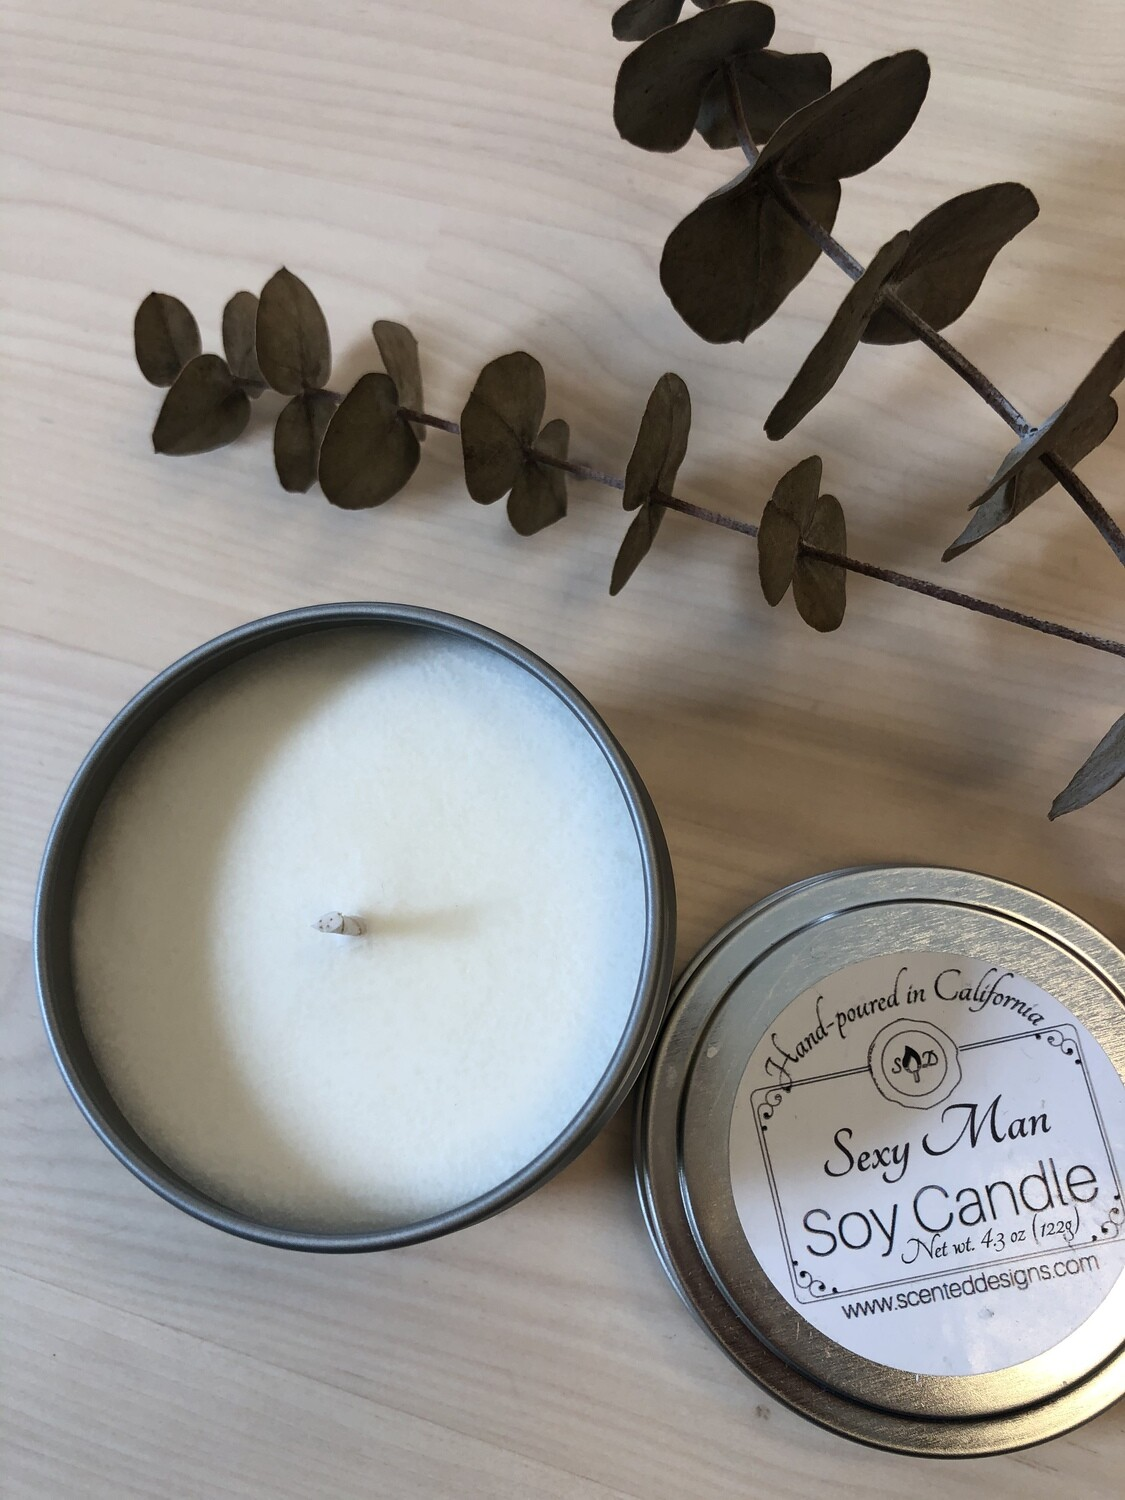 Travel Tin Soy Candle - Sexy Man